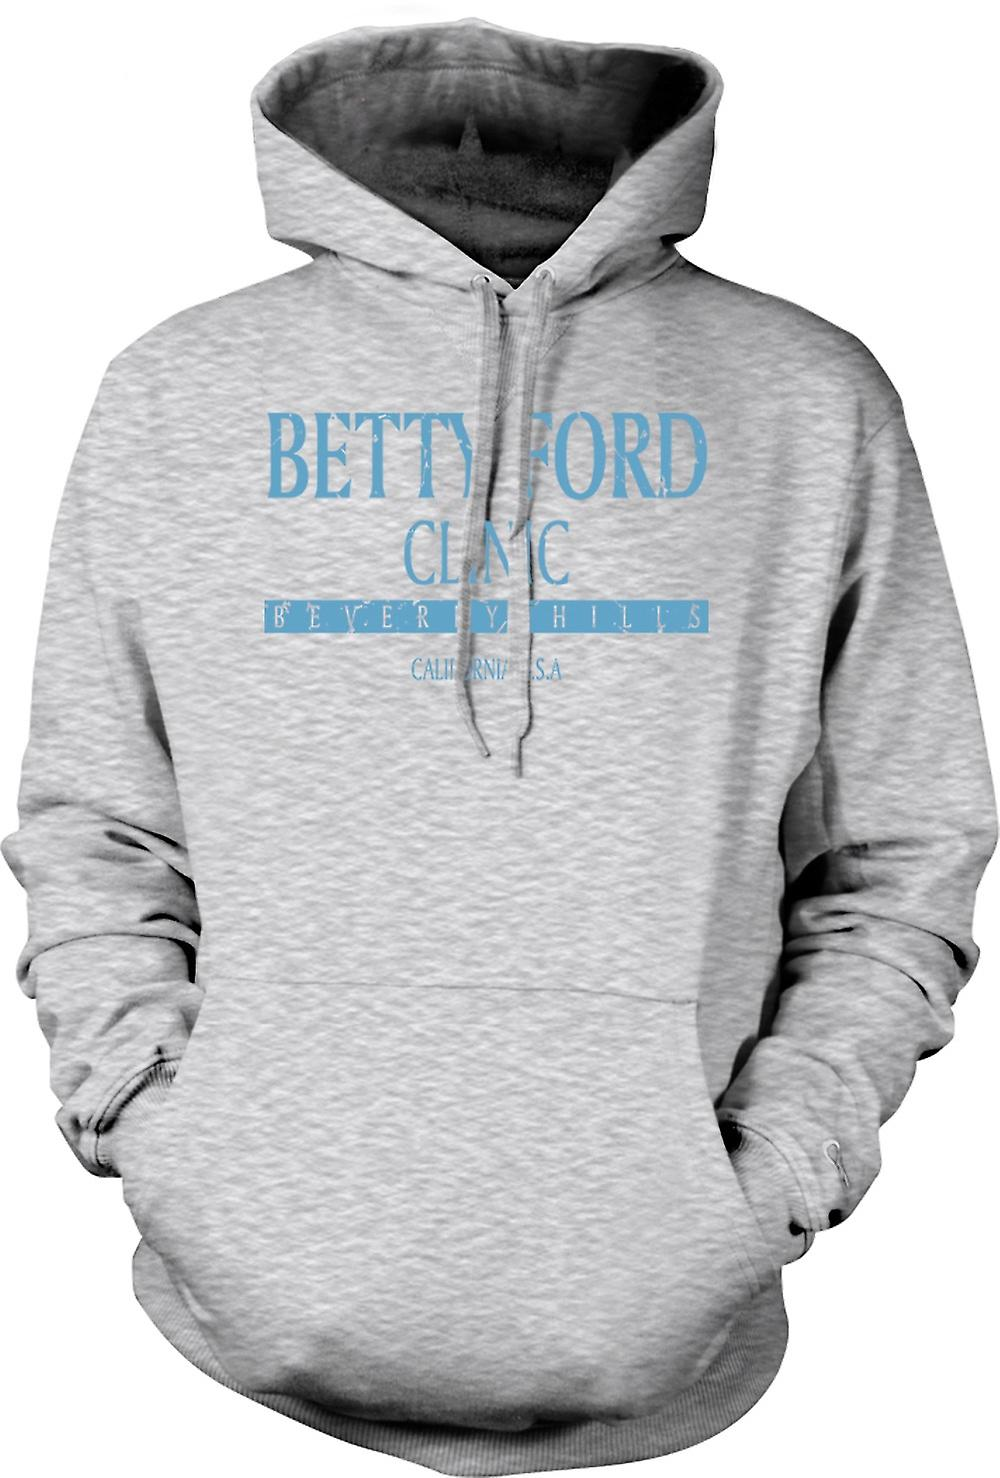 Mens-Hoodie - Betty Ford Klinik - Reha